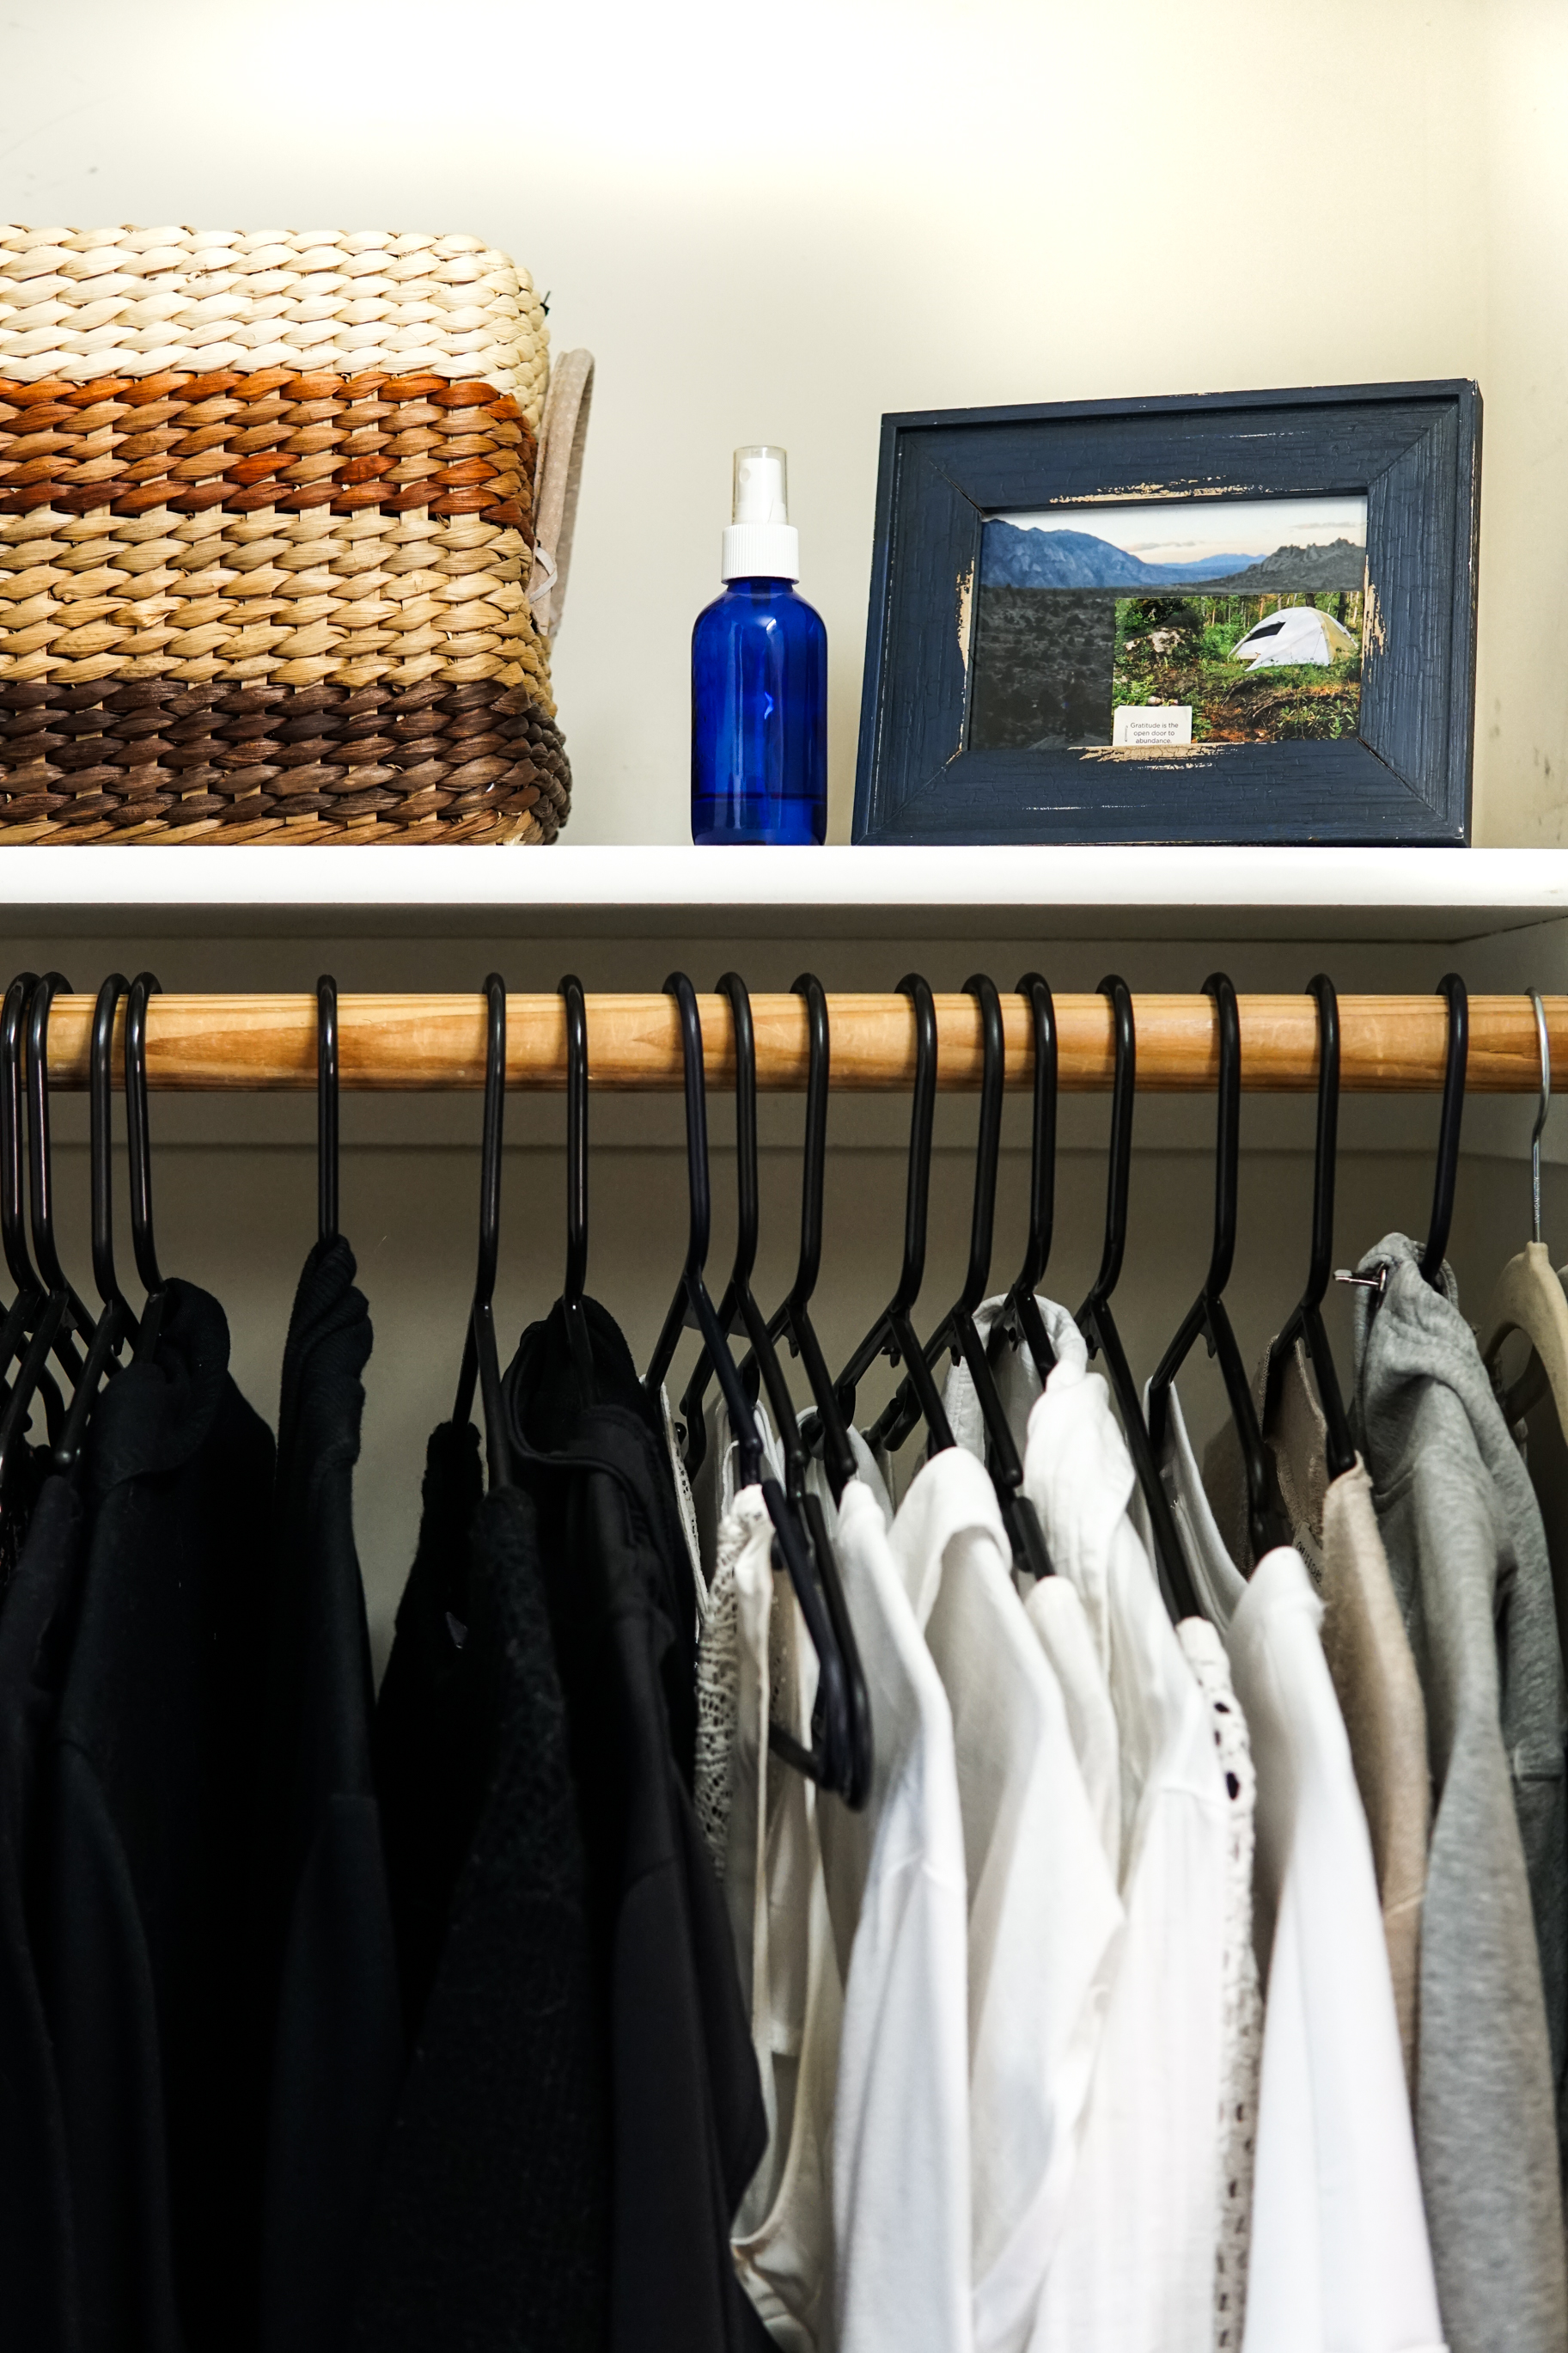 A simple closet with 30 hangers.jpg